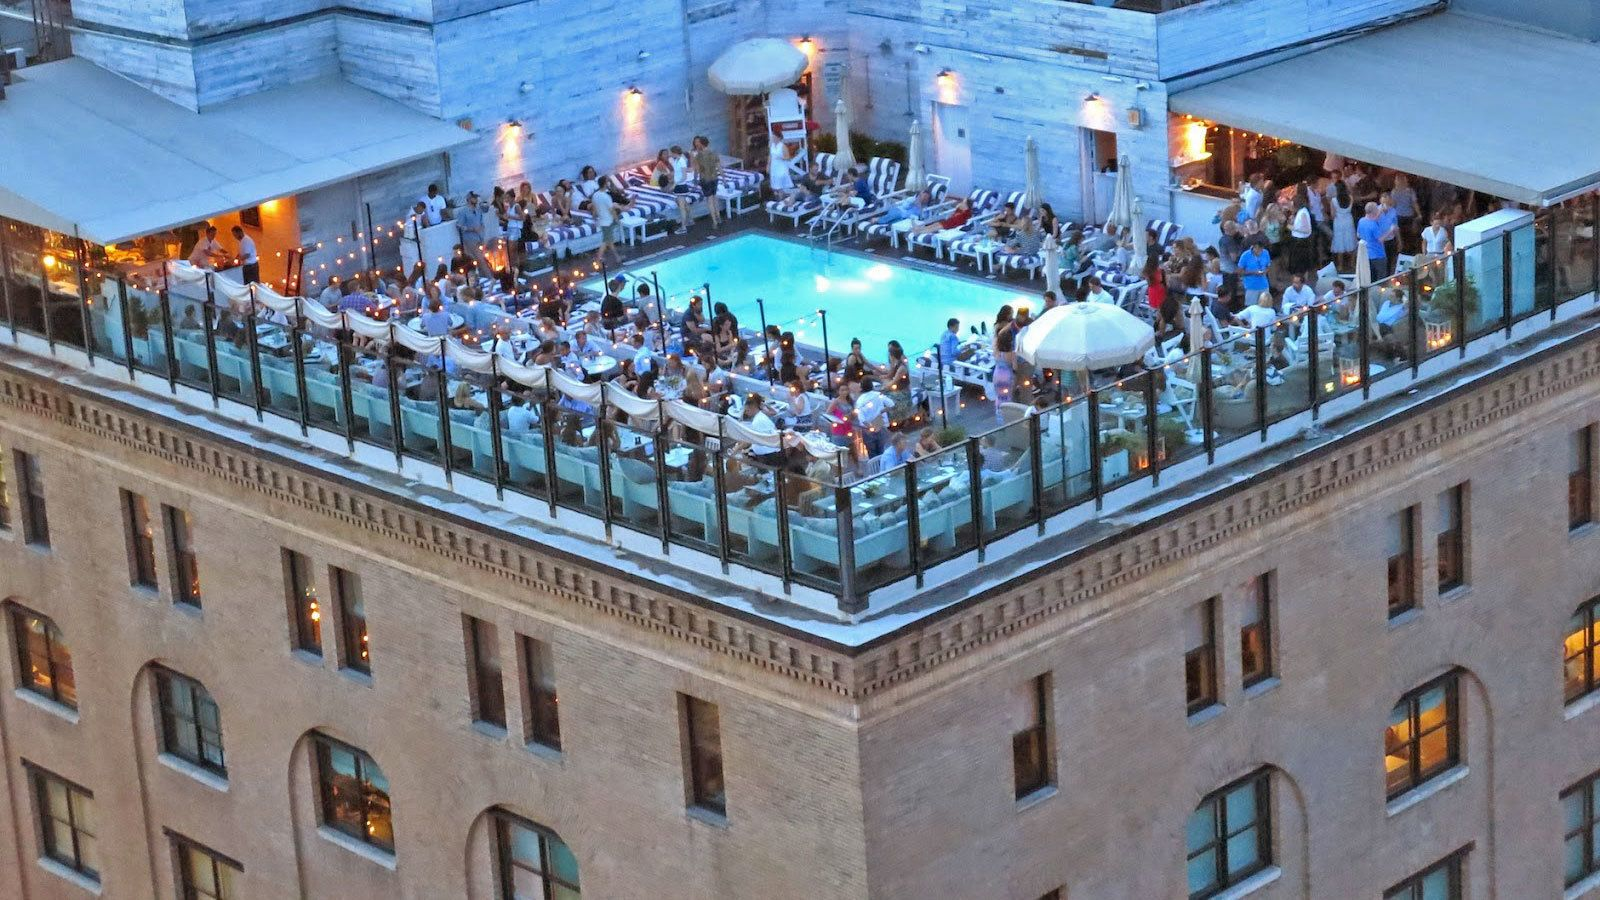 Aerial view of guests enjoying their time at the Rooftop Lounge Experience in New York